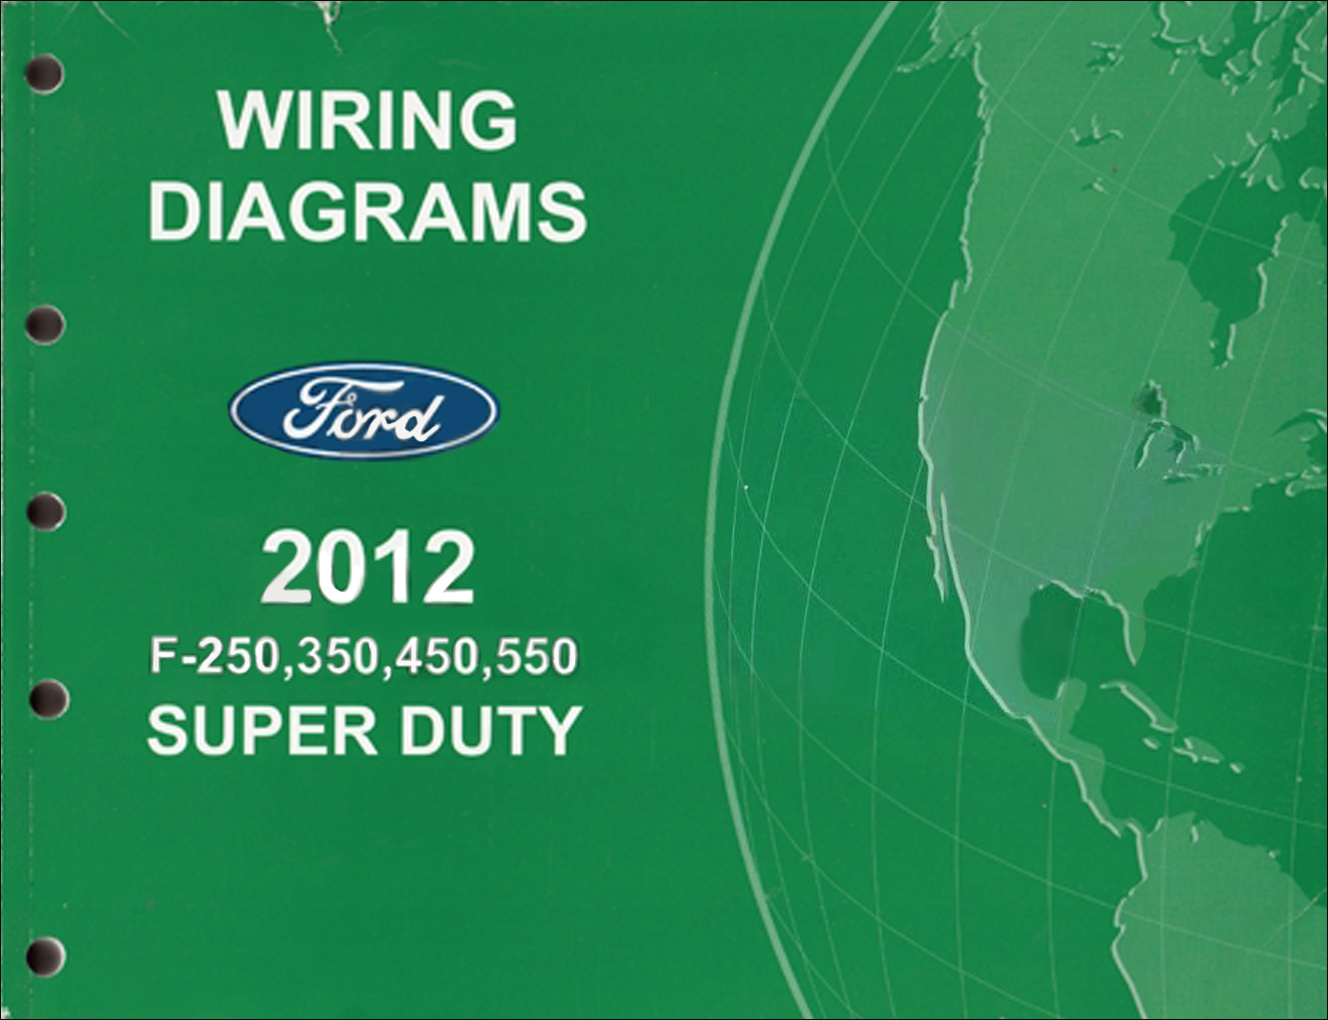 2012 Ford F-250 thru 550 Super Duty Wiring Diagram Manual Original F Super Duty Wiring Diagram on model a wiring diagram, k5 blazer wiring diagram, civic wiring diagram, fusion wiring diagram, crown victoria wiring diagram, mustang wiring diagram, f150 wiring diagram, taurus wiring diagram, bronco wiring diagram, windstar wiring diagram, f250 super duty wiring diagram,